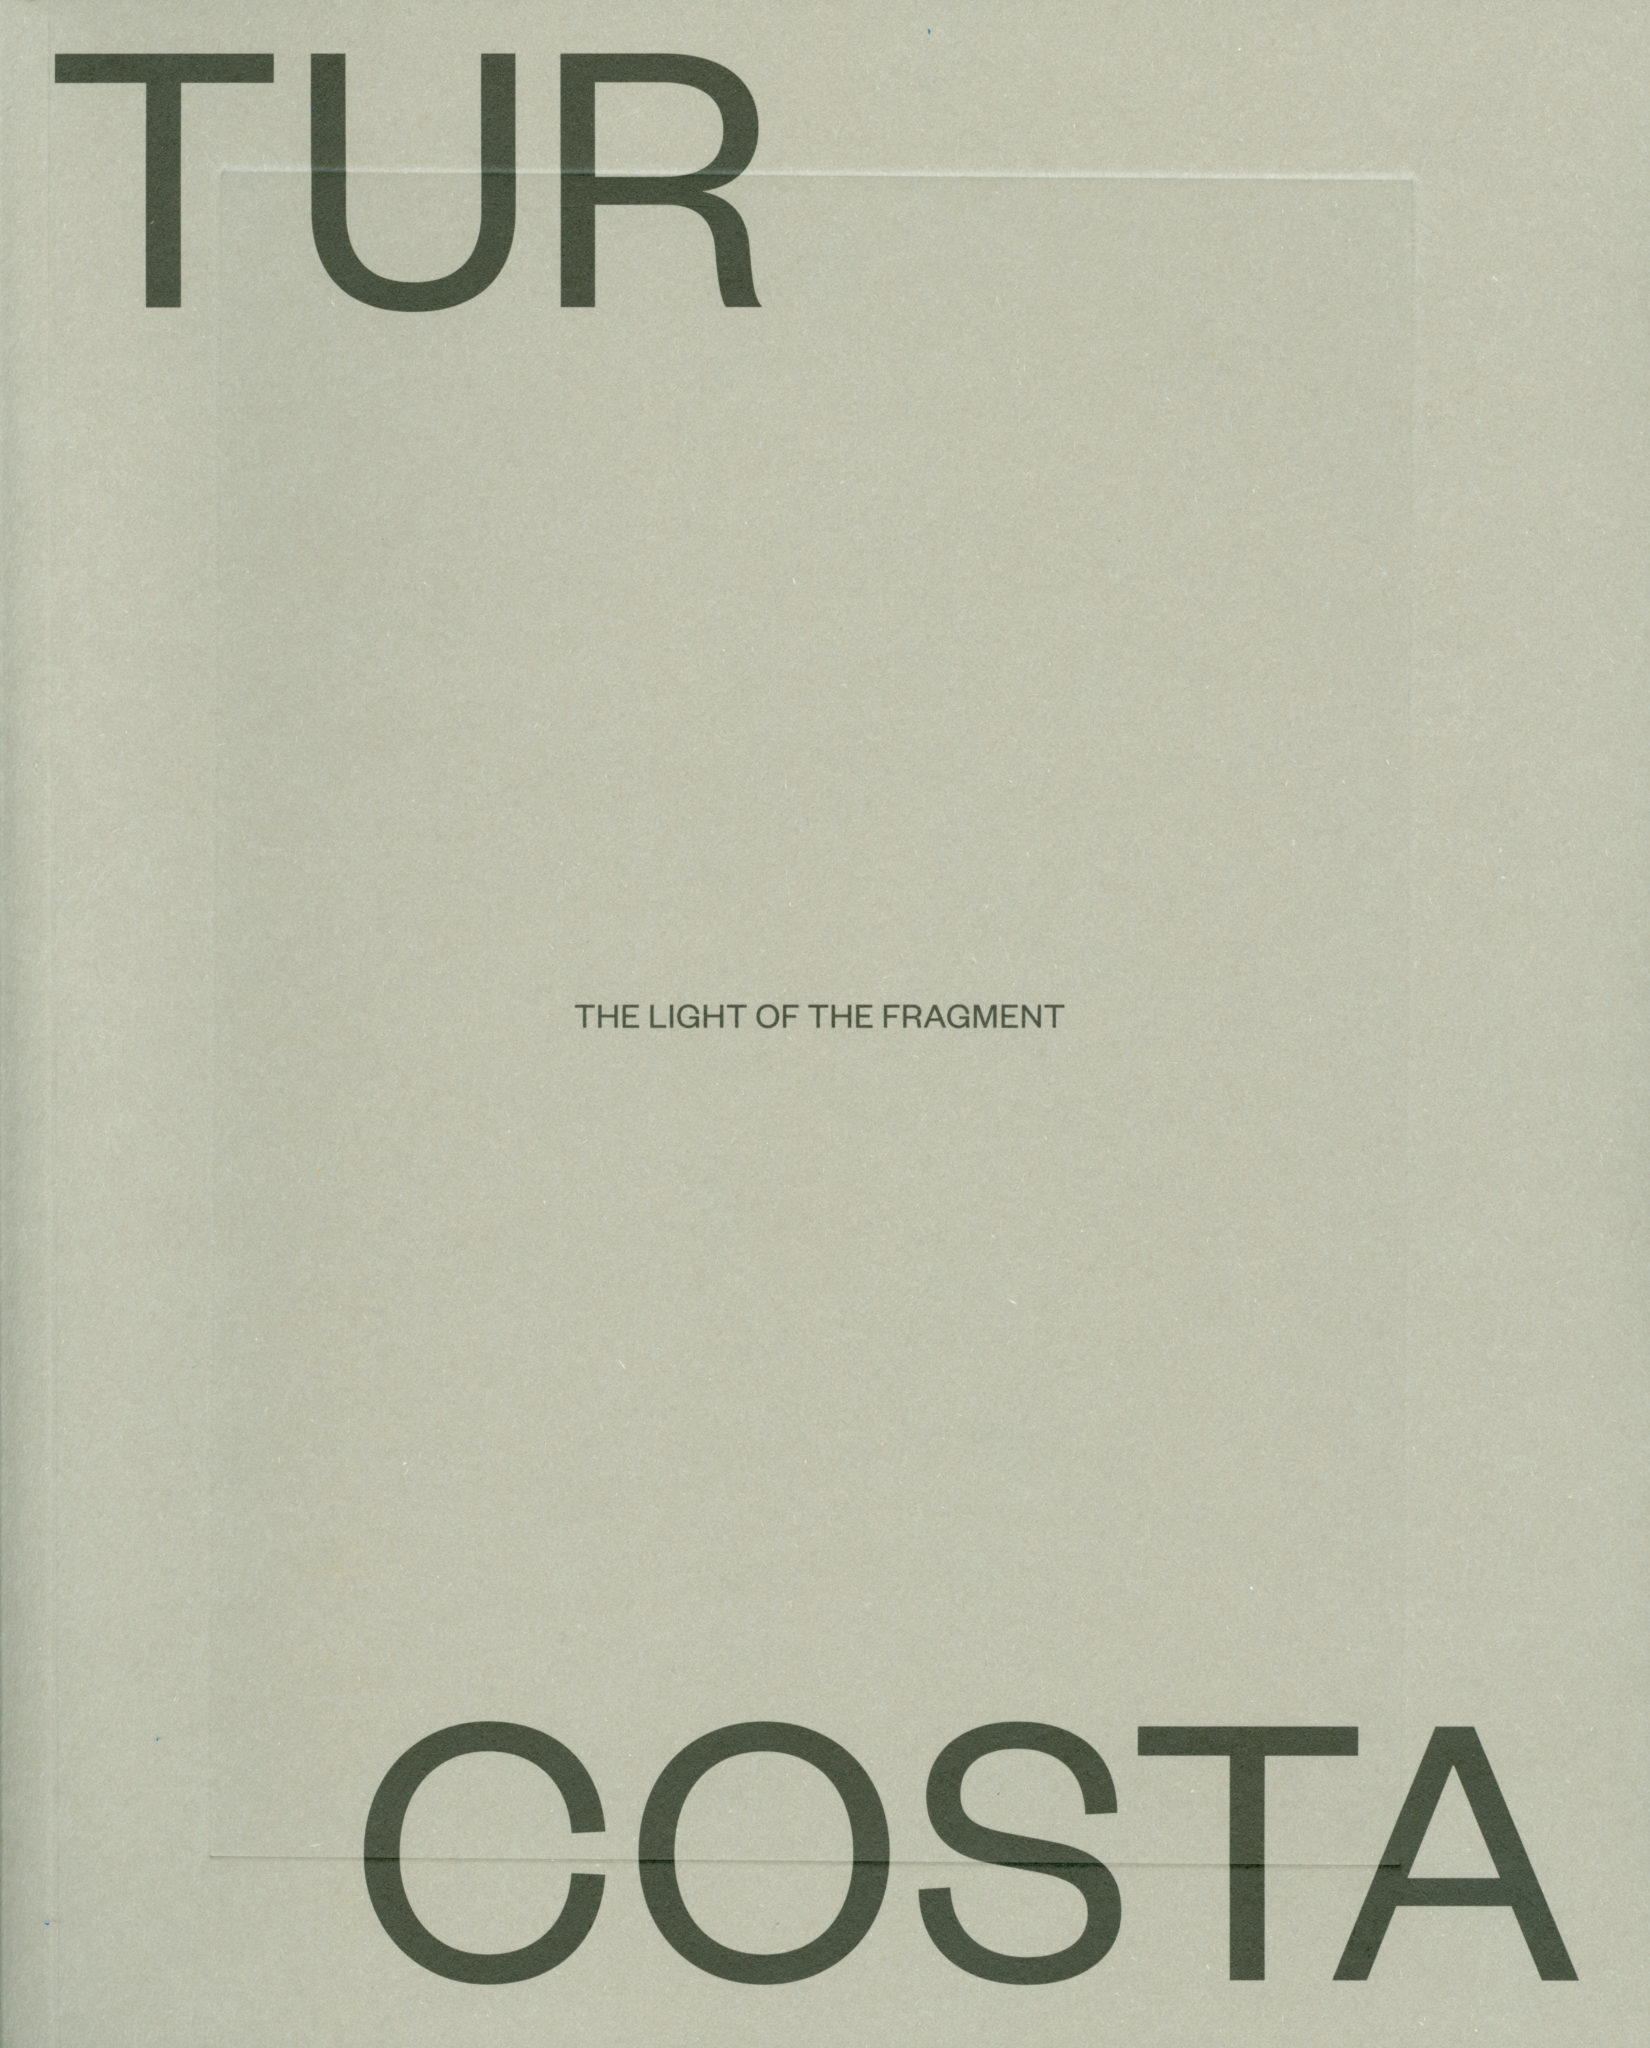 Tur Costa. The light of the fragment / An Ibizan boy during the Civil War